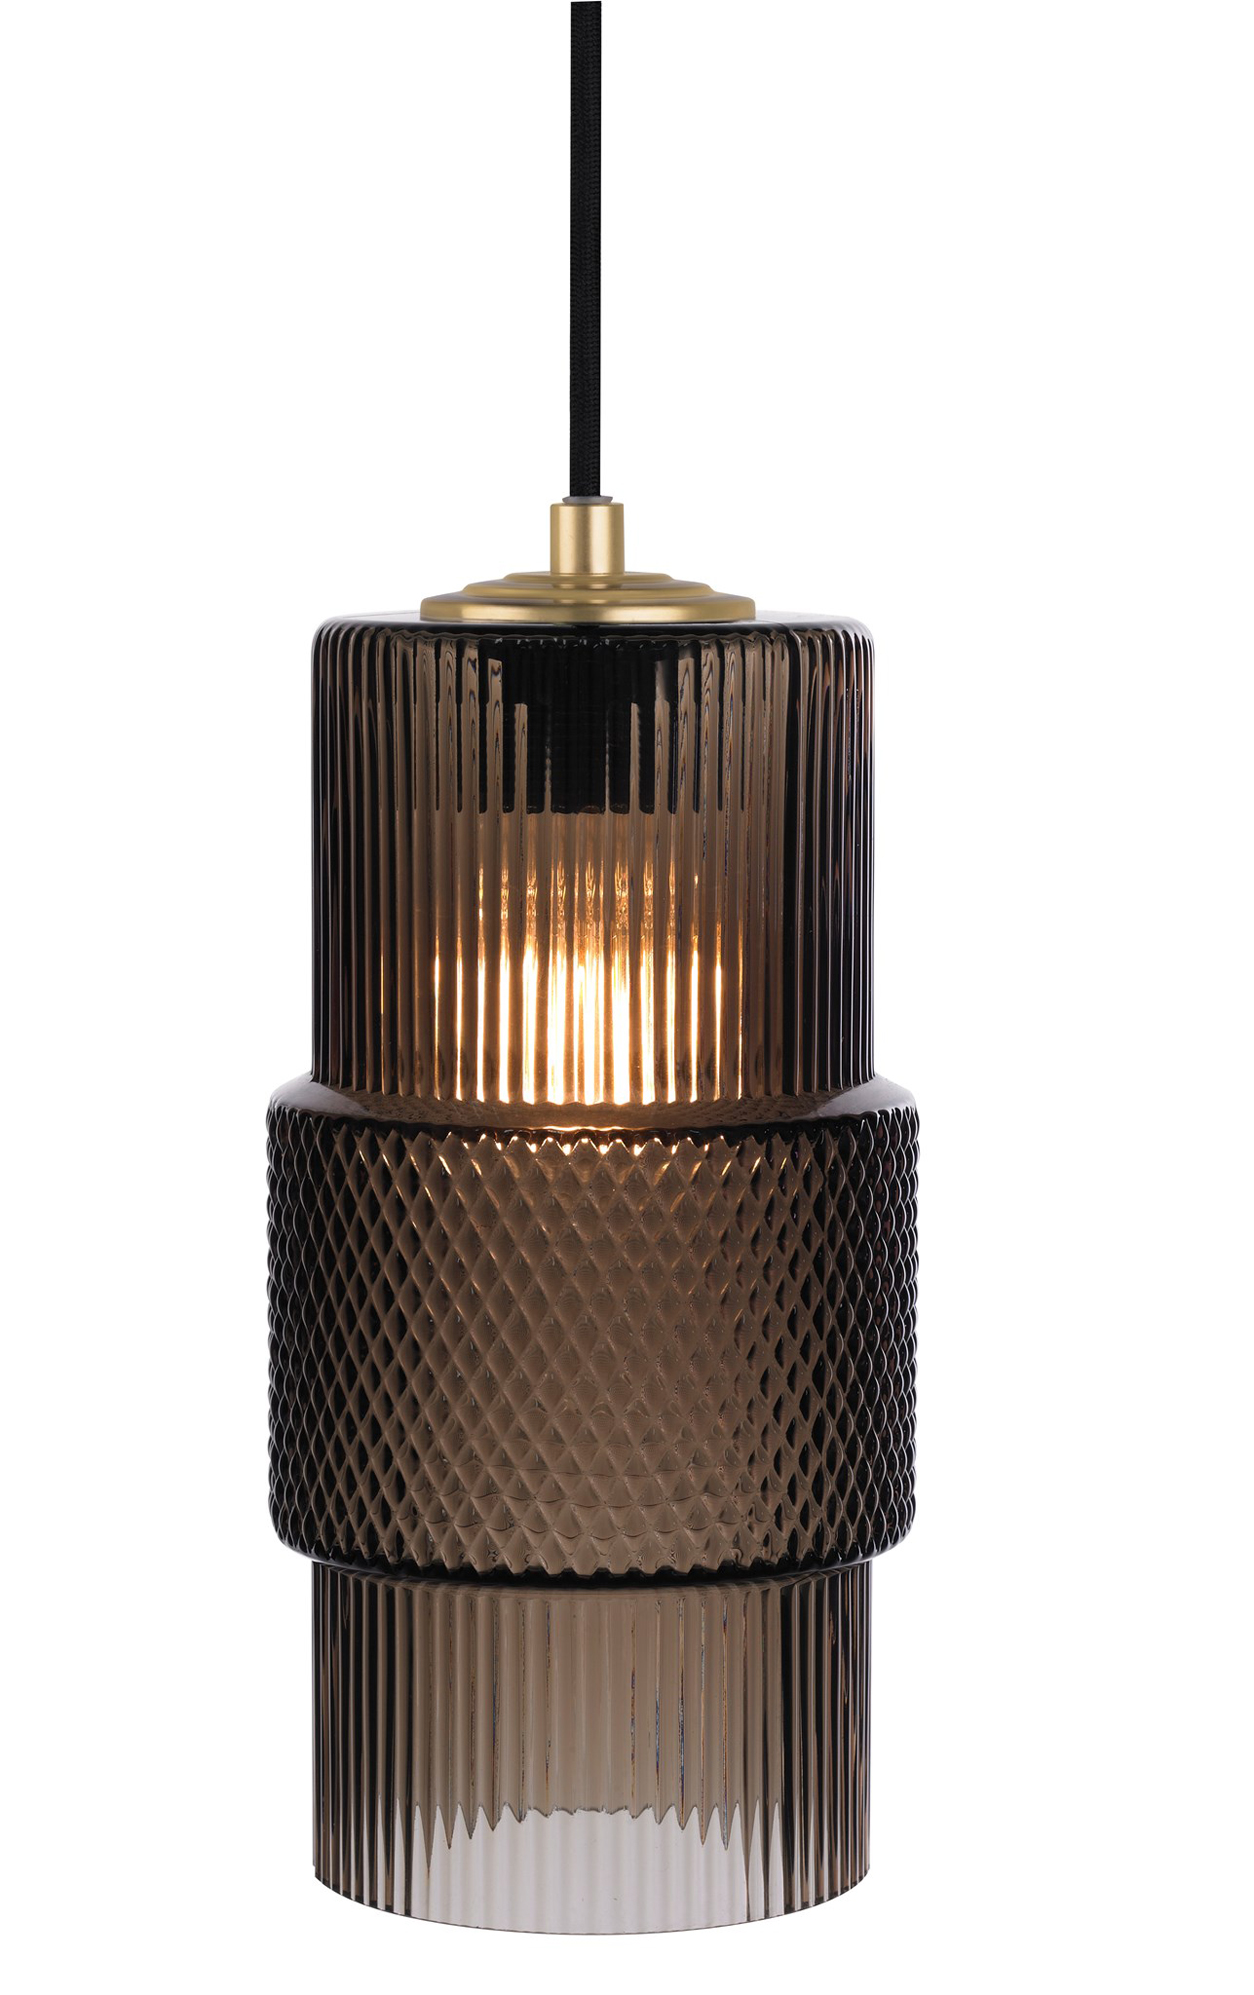 finish ariana amber designer en black cylinder product matte cloth pendant light cord glass